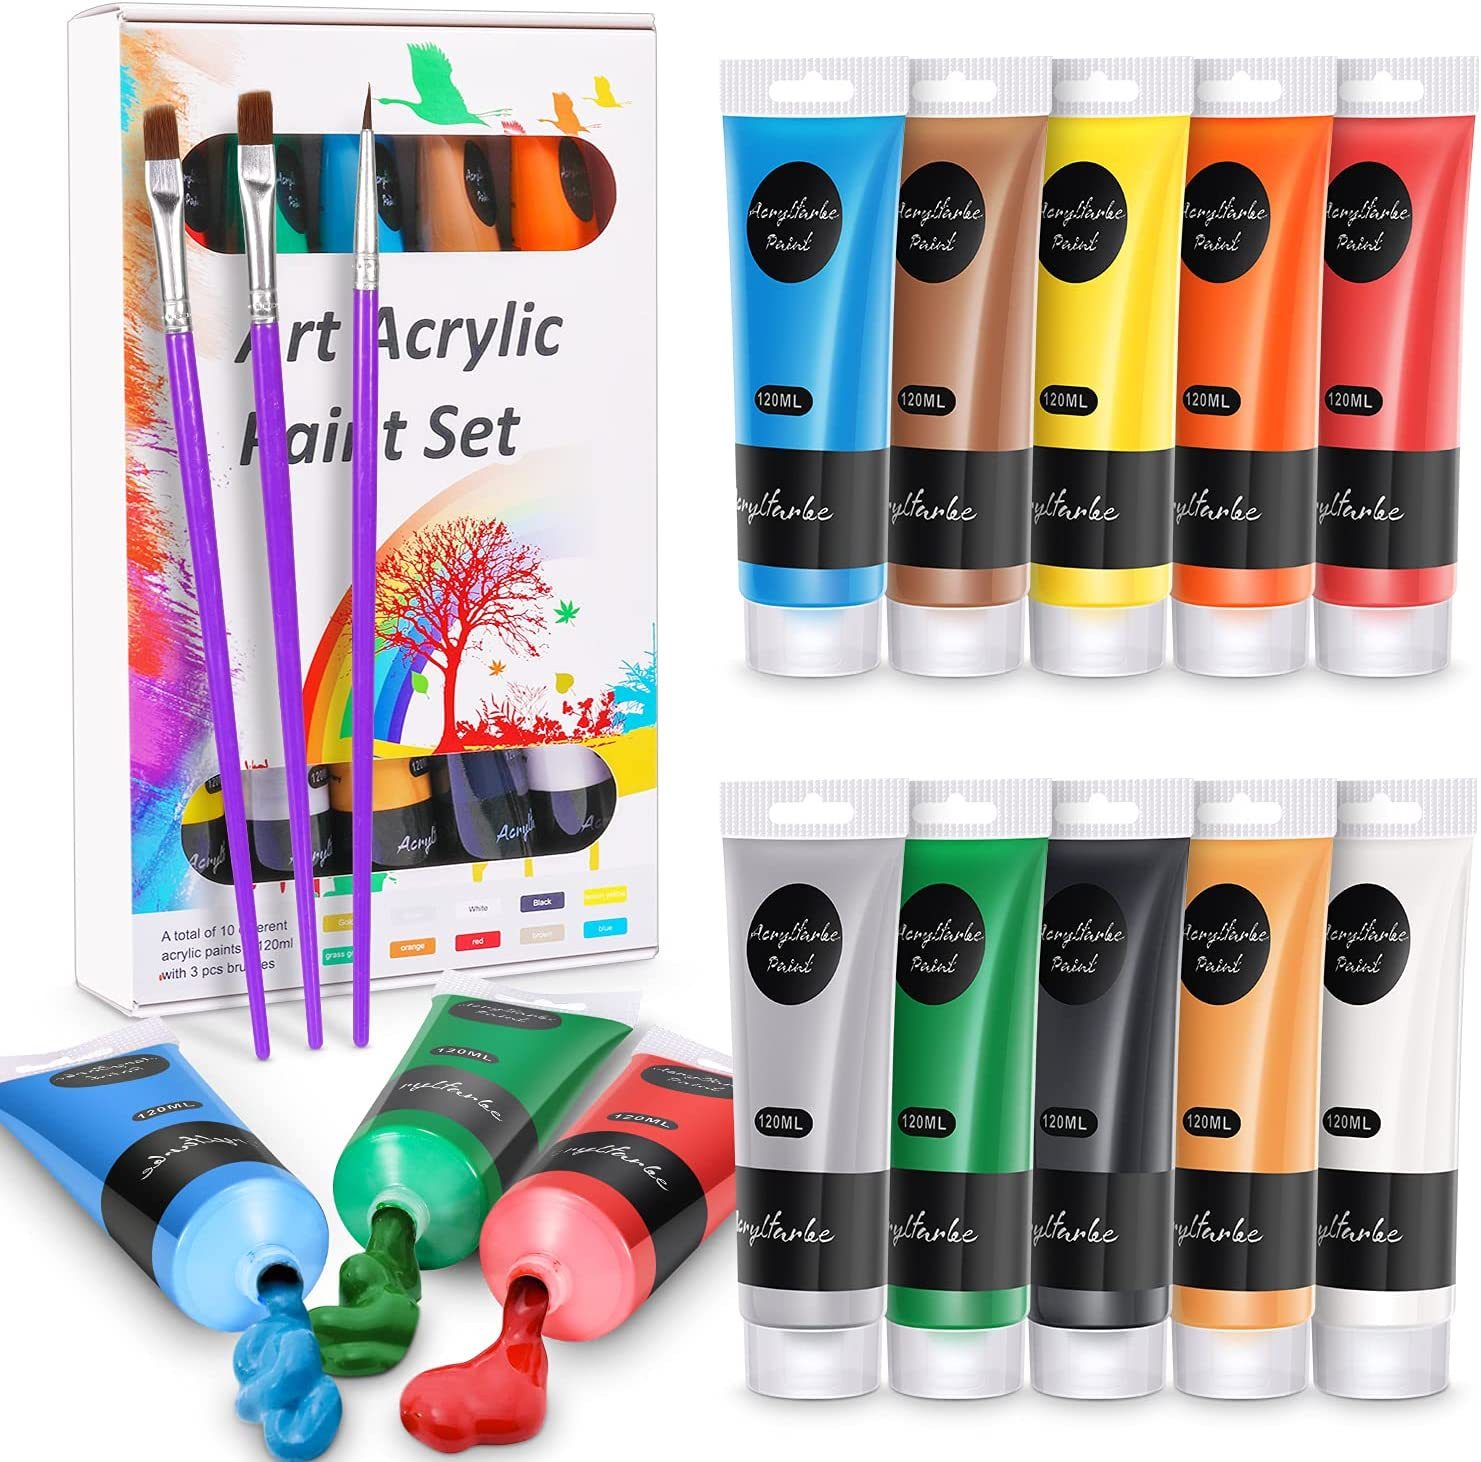 WOSTOO Acrylic Paint Set Tube + Brush Acrylic Paint Highly Opaque Quick Drying Colour Pigments High Content Acrylic Paint Set for Hobby Artists and Professionals